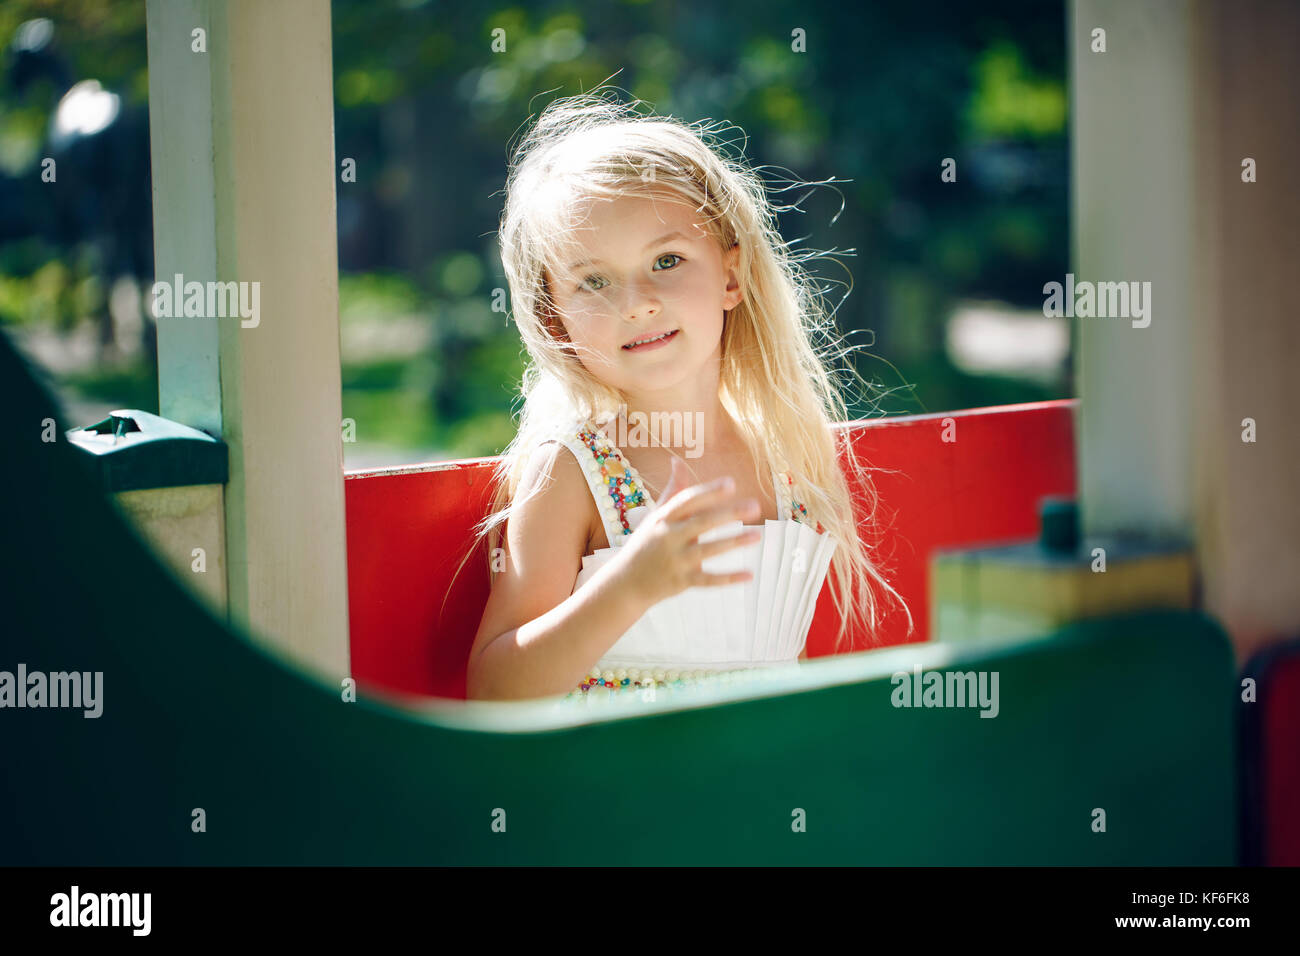 summer, childhood, leisure, gesture and people concept - happy little girl playing on children playground at sunny - Stock Image